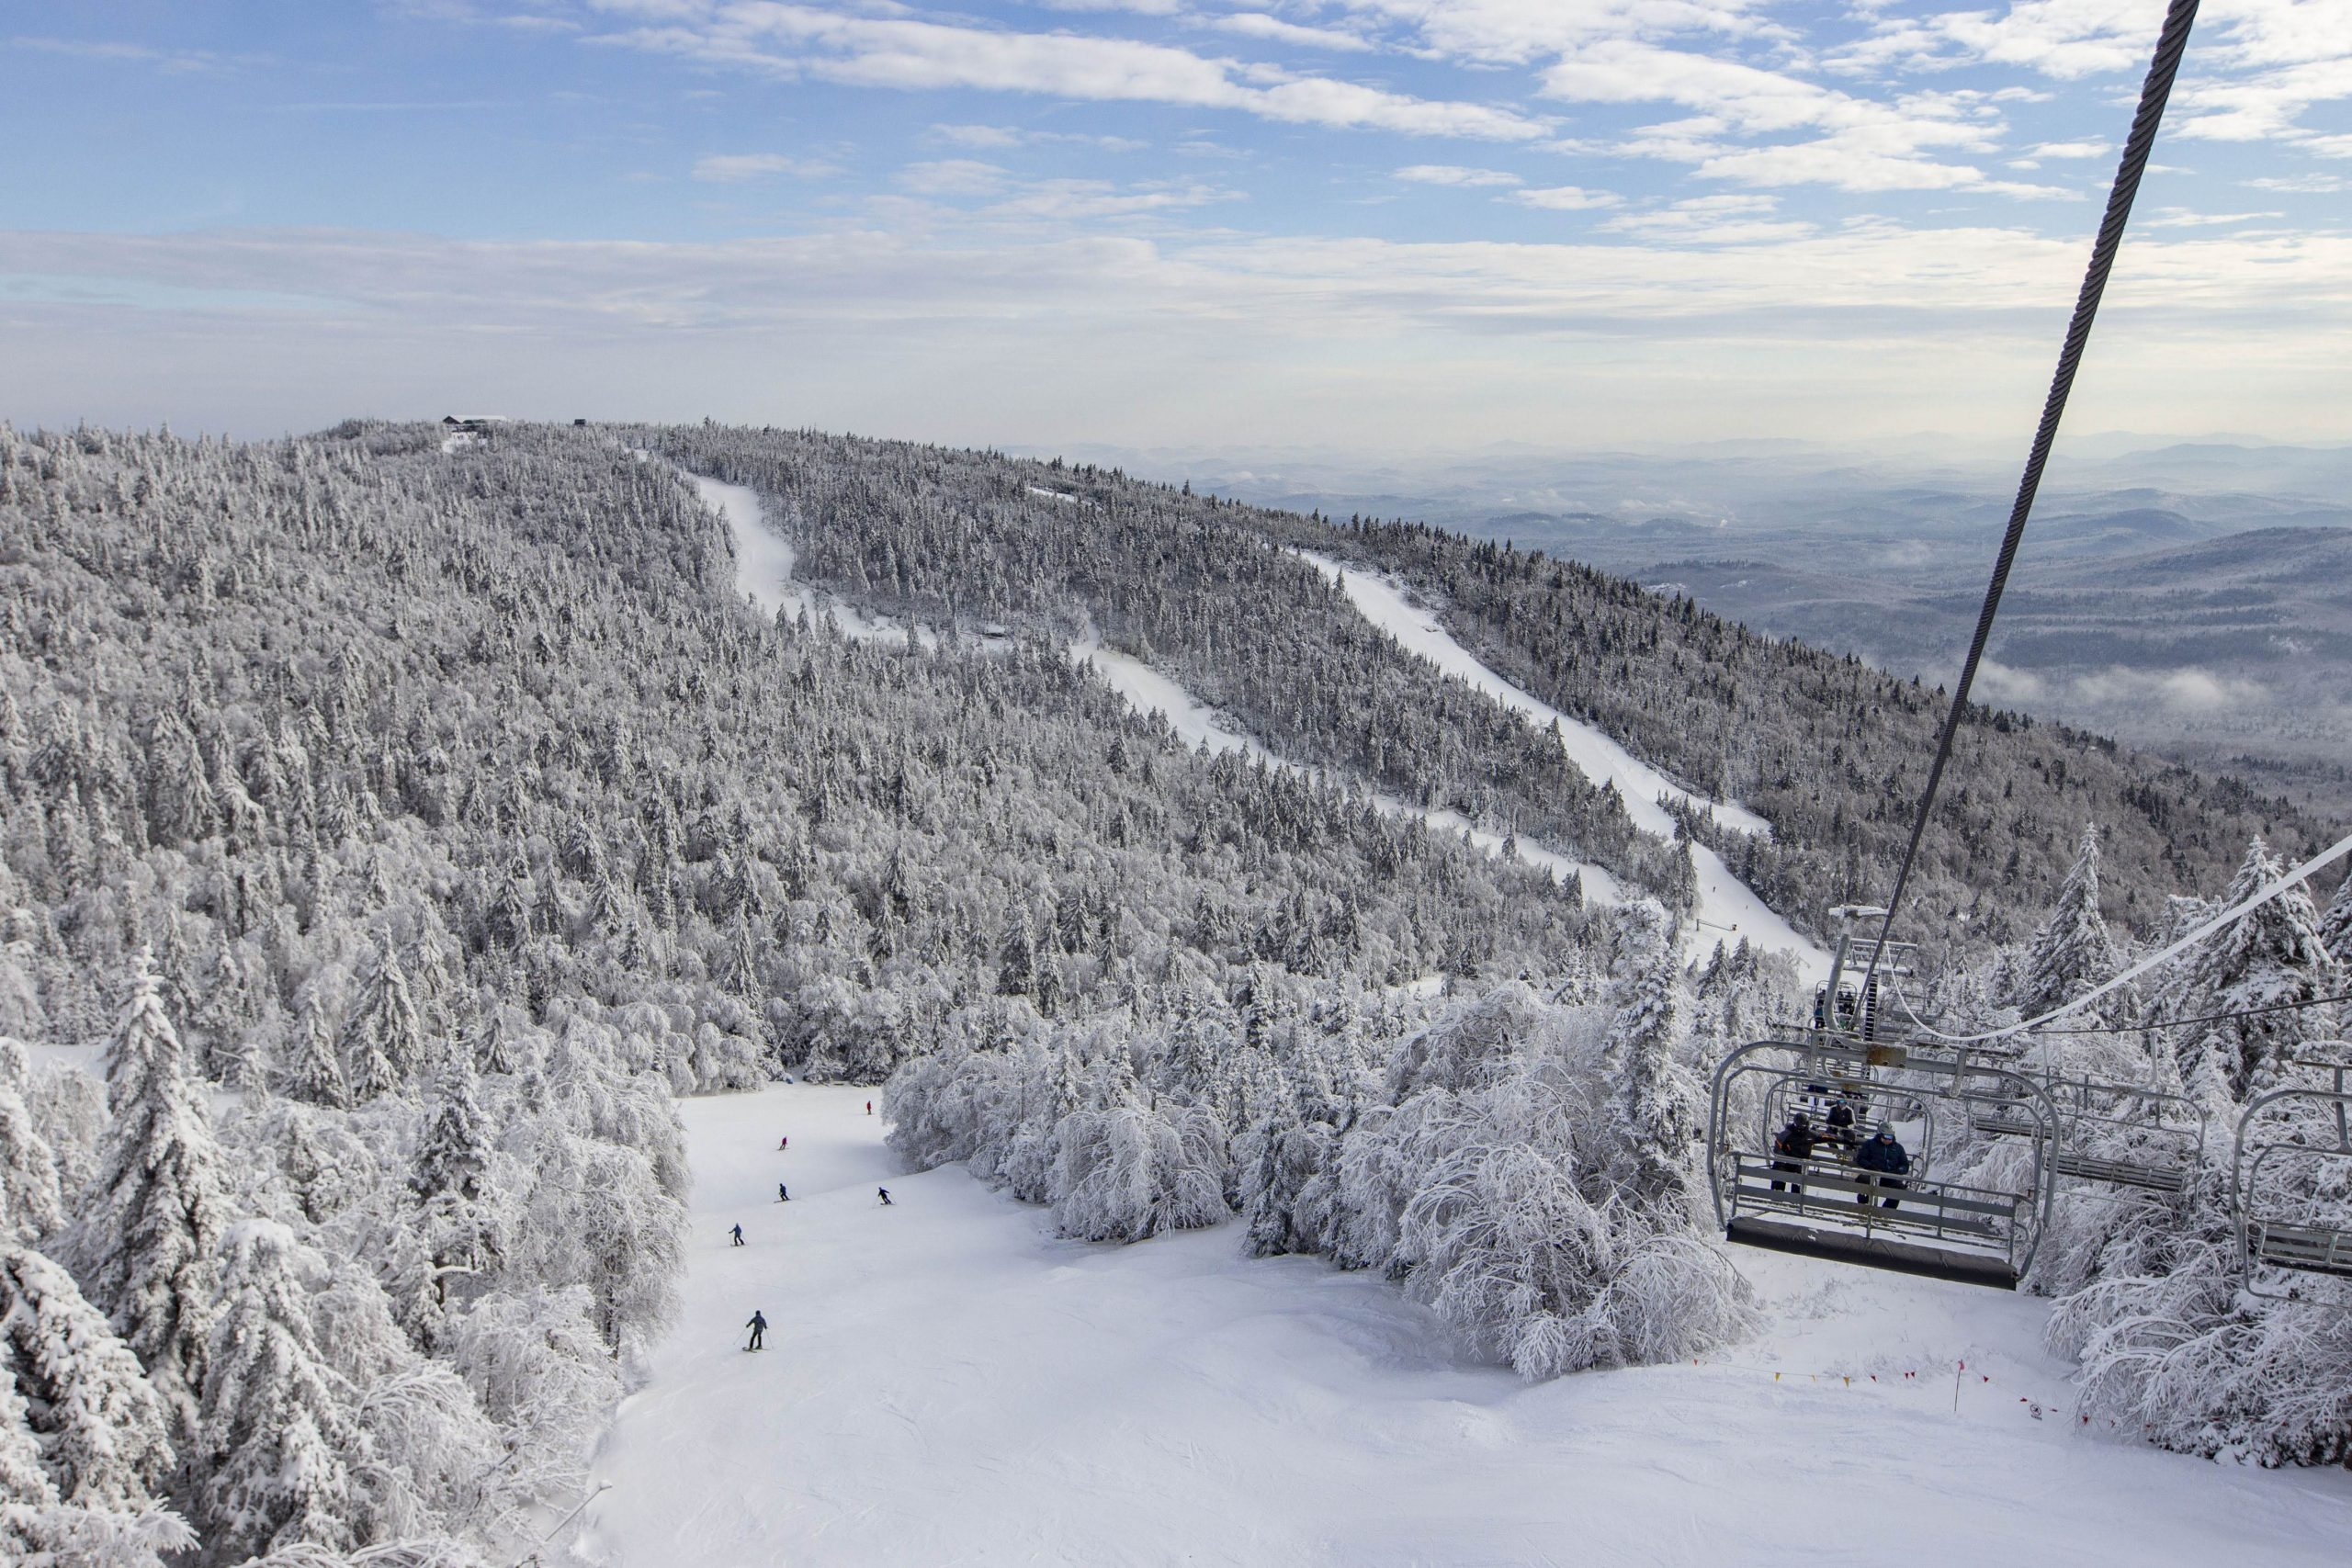 view of a chairlift and ski trails in winter